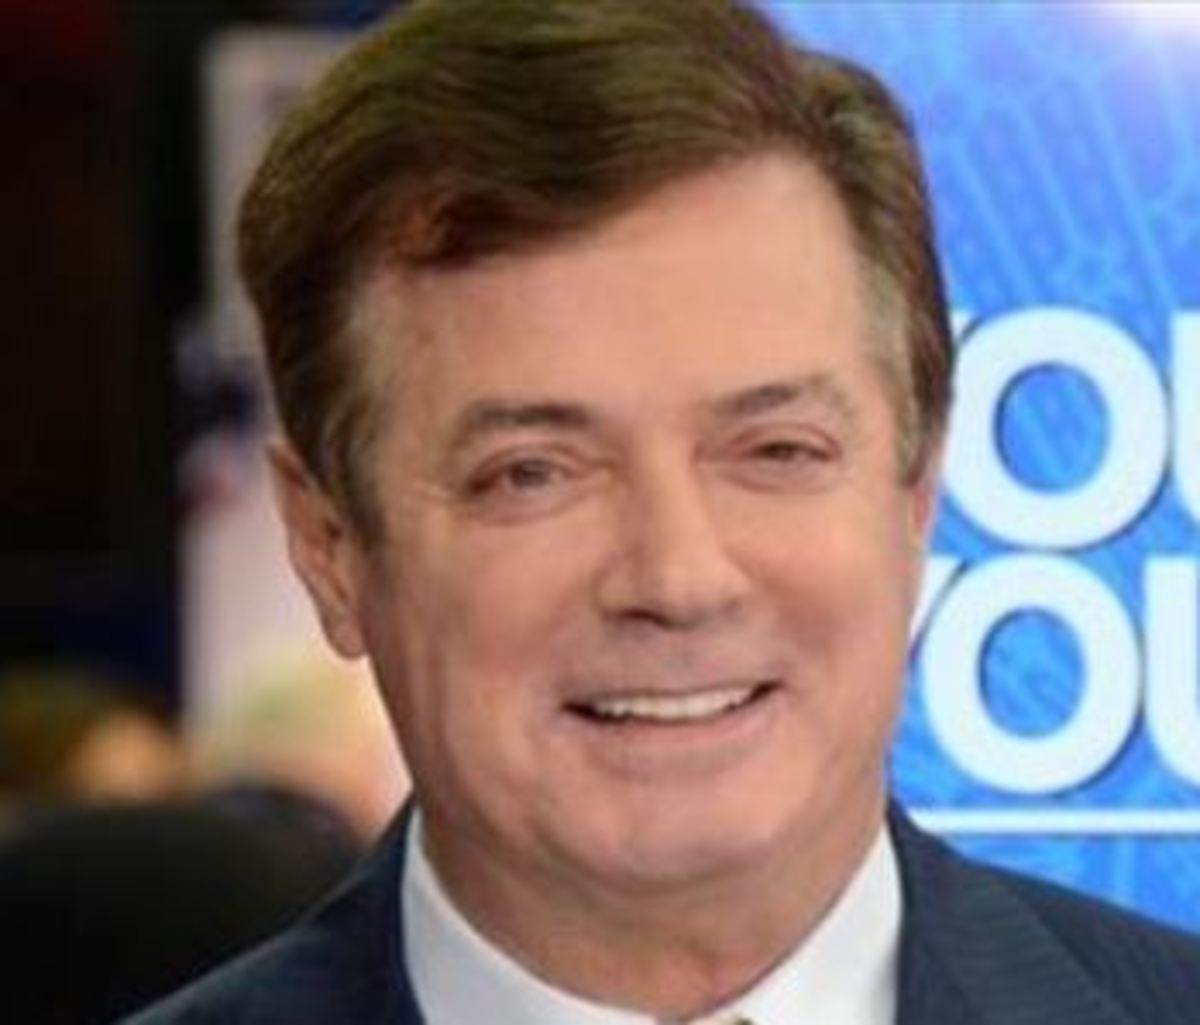 Trump campaign manager Paul Manafort